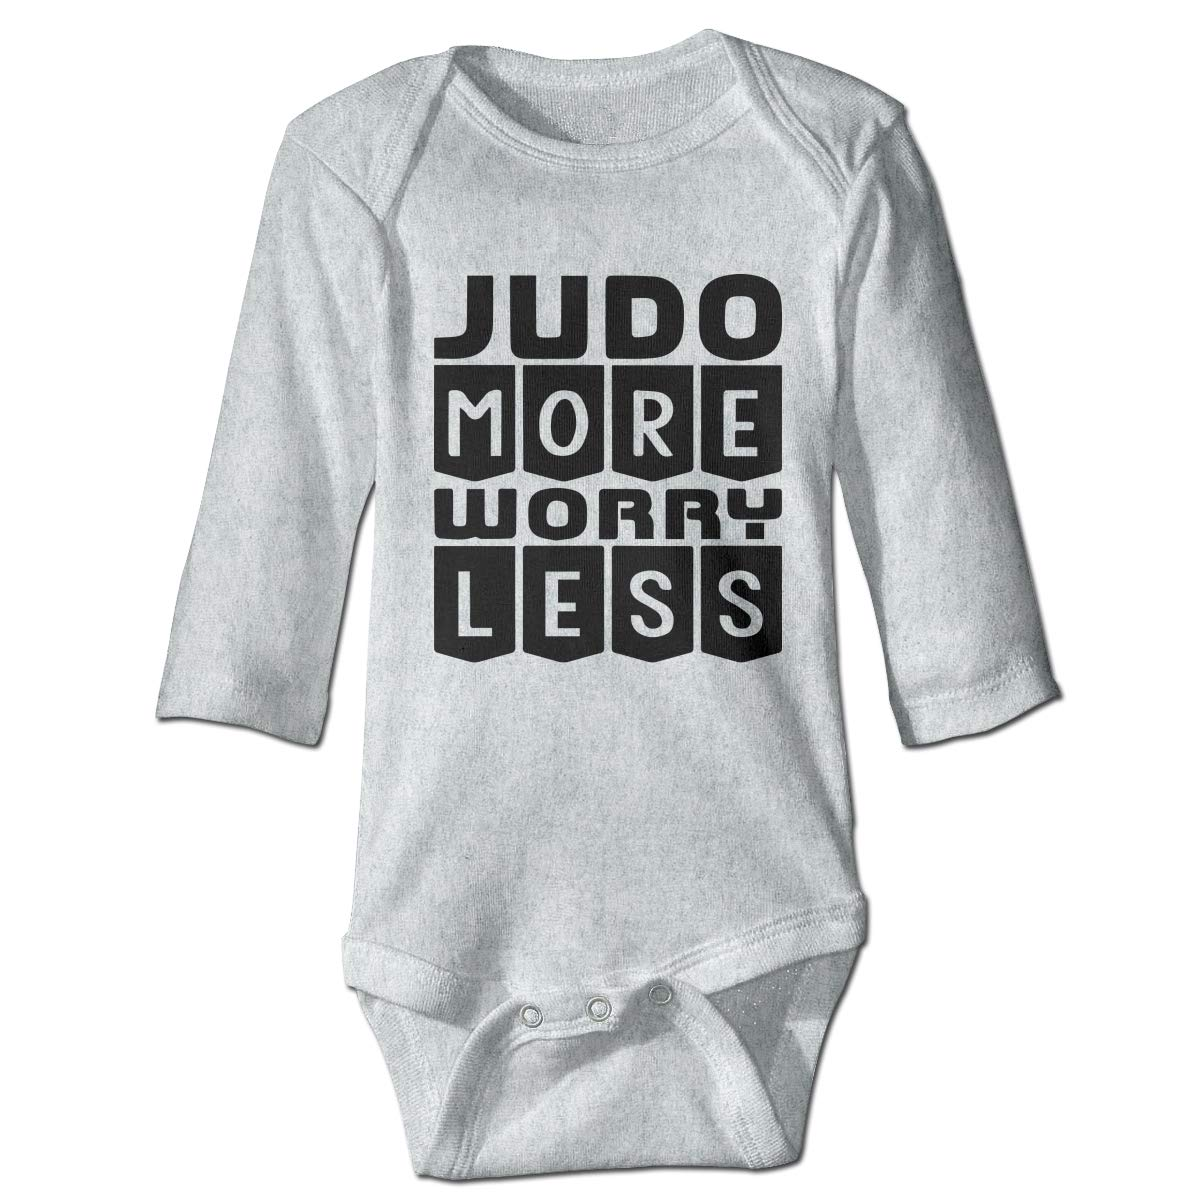 A14UBP Baby Infant Toddler Romper Bodysuit Jumpsuit Judo More Worry Less Long Sleeve Funny Romper Bodysuit